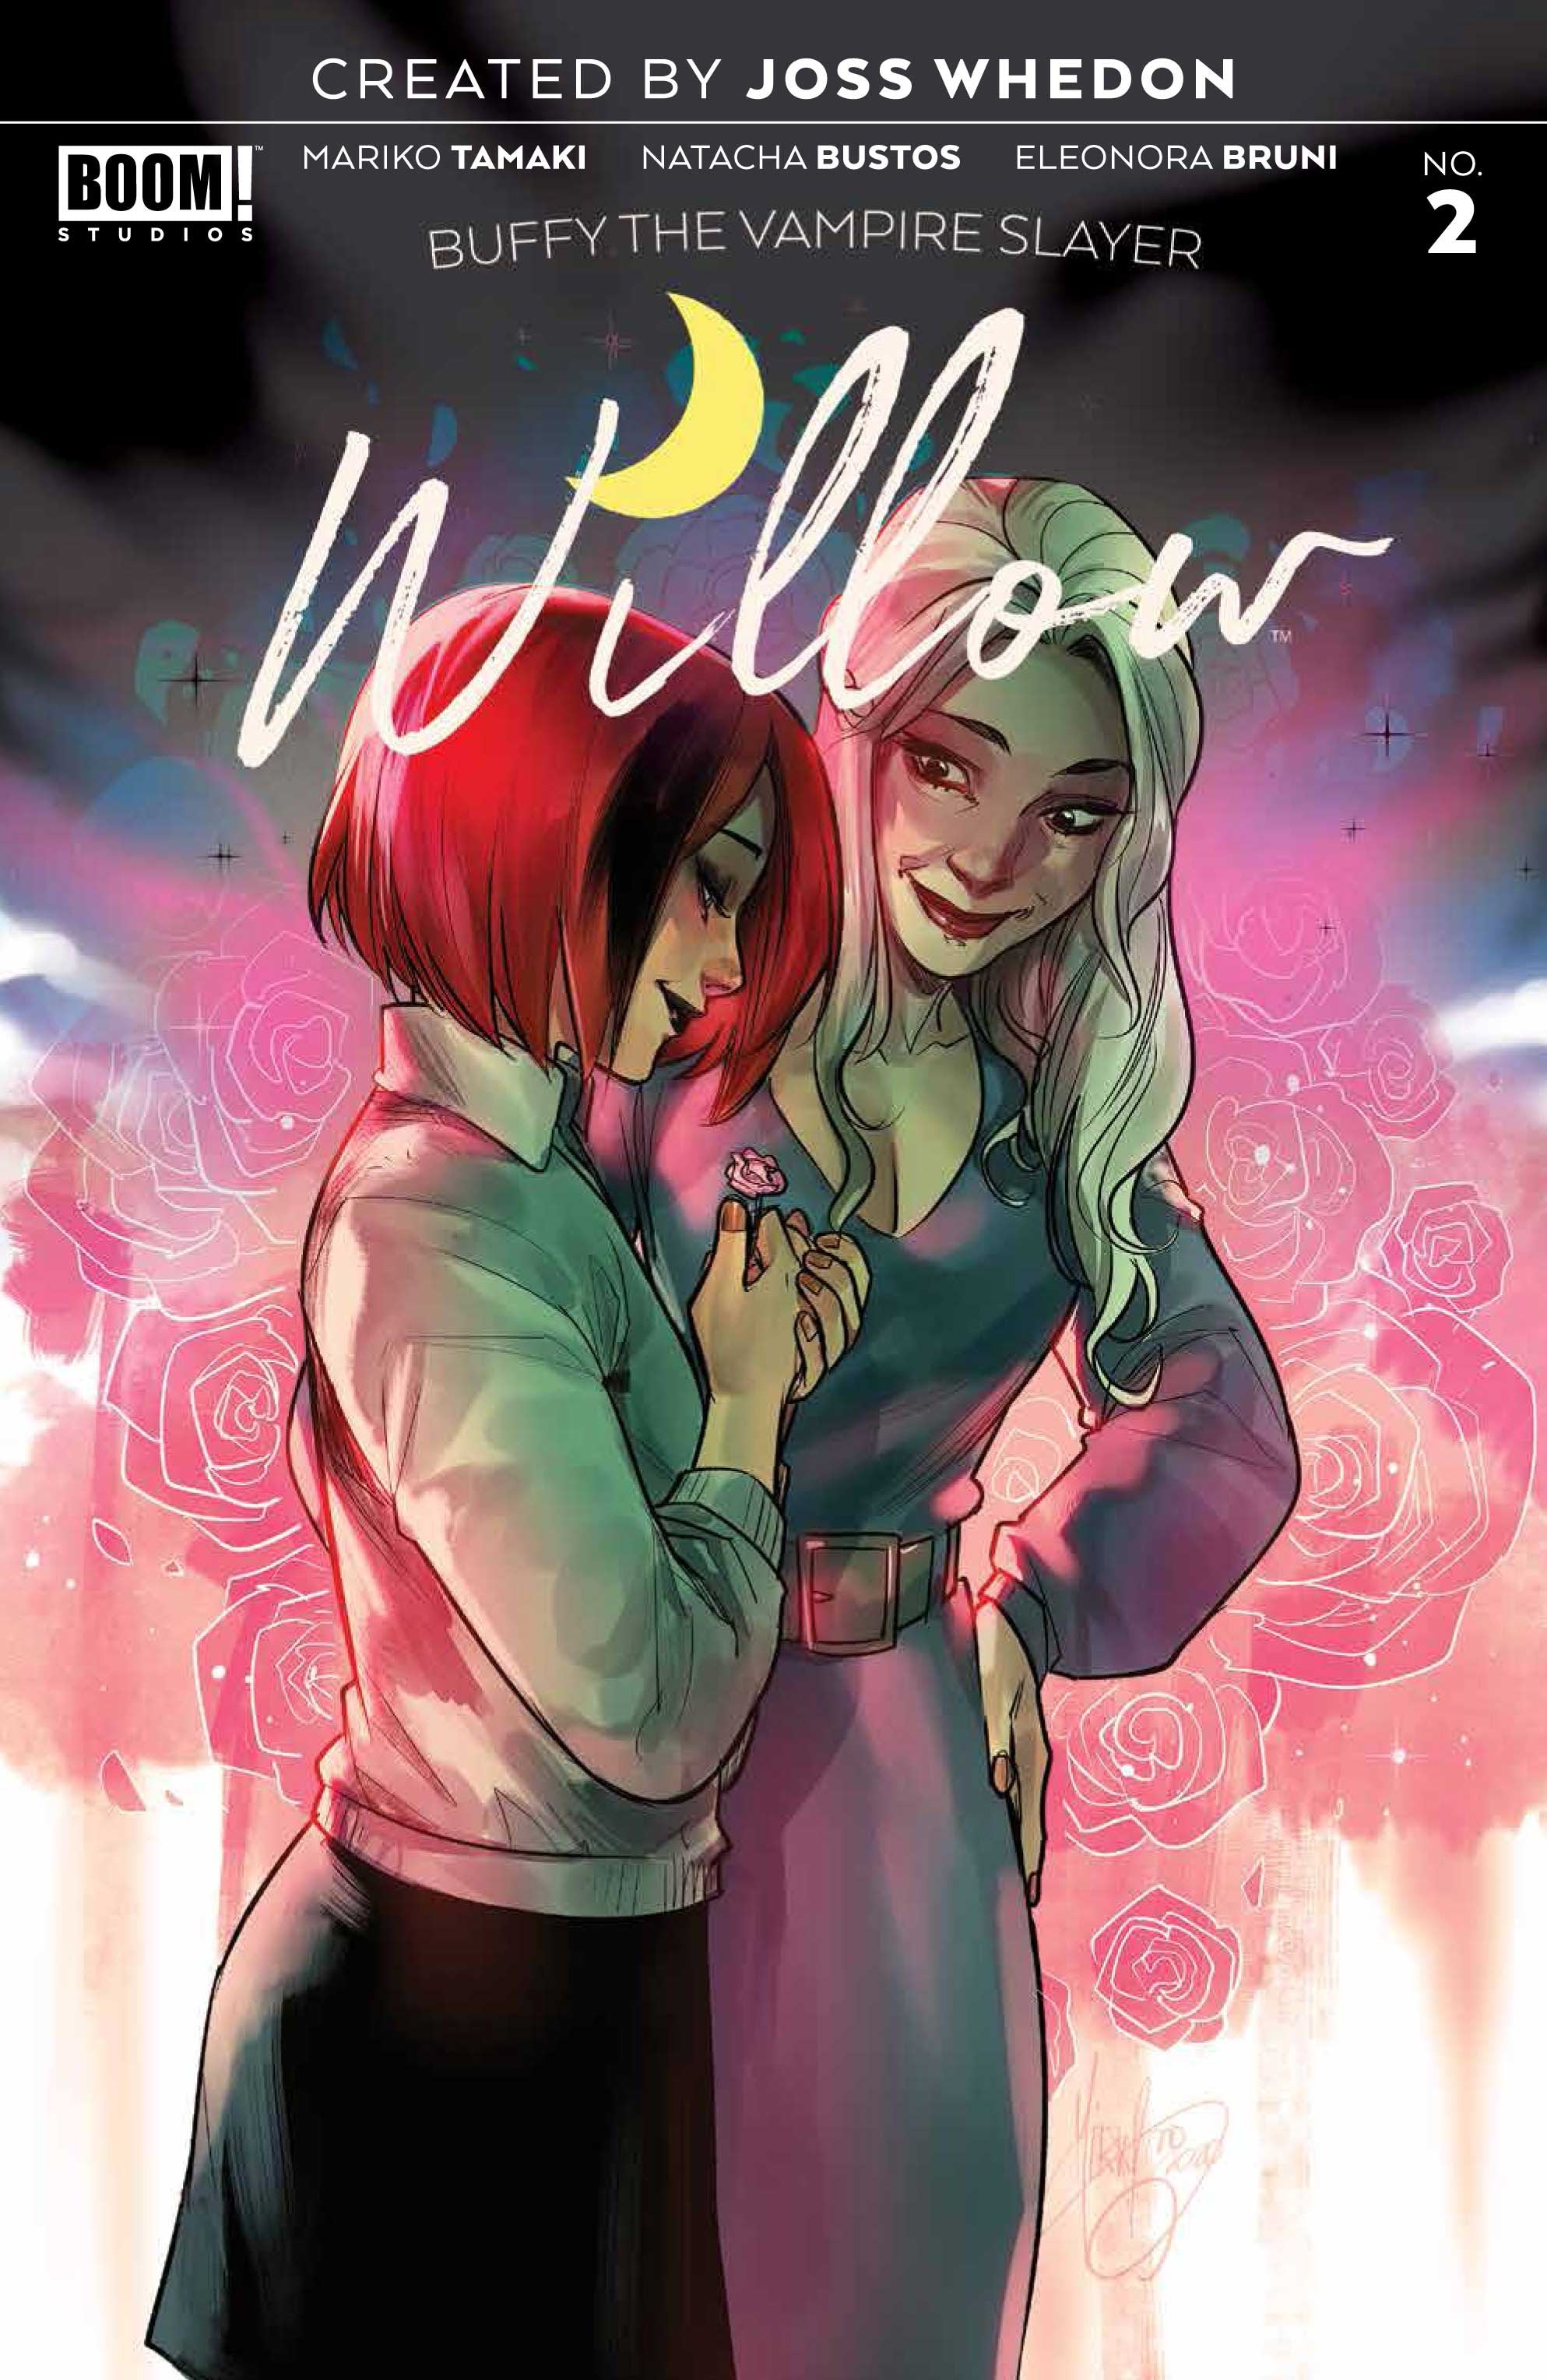 08/12/2020 BUFFY THE VAMPIRE SLAYER WILLOW #2 CVR B ANDOLFO